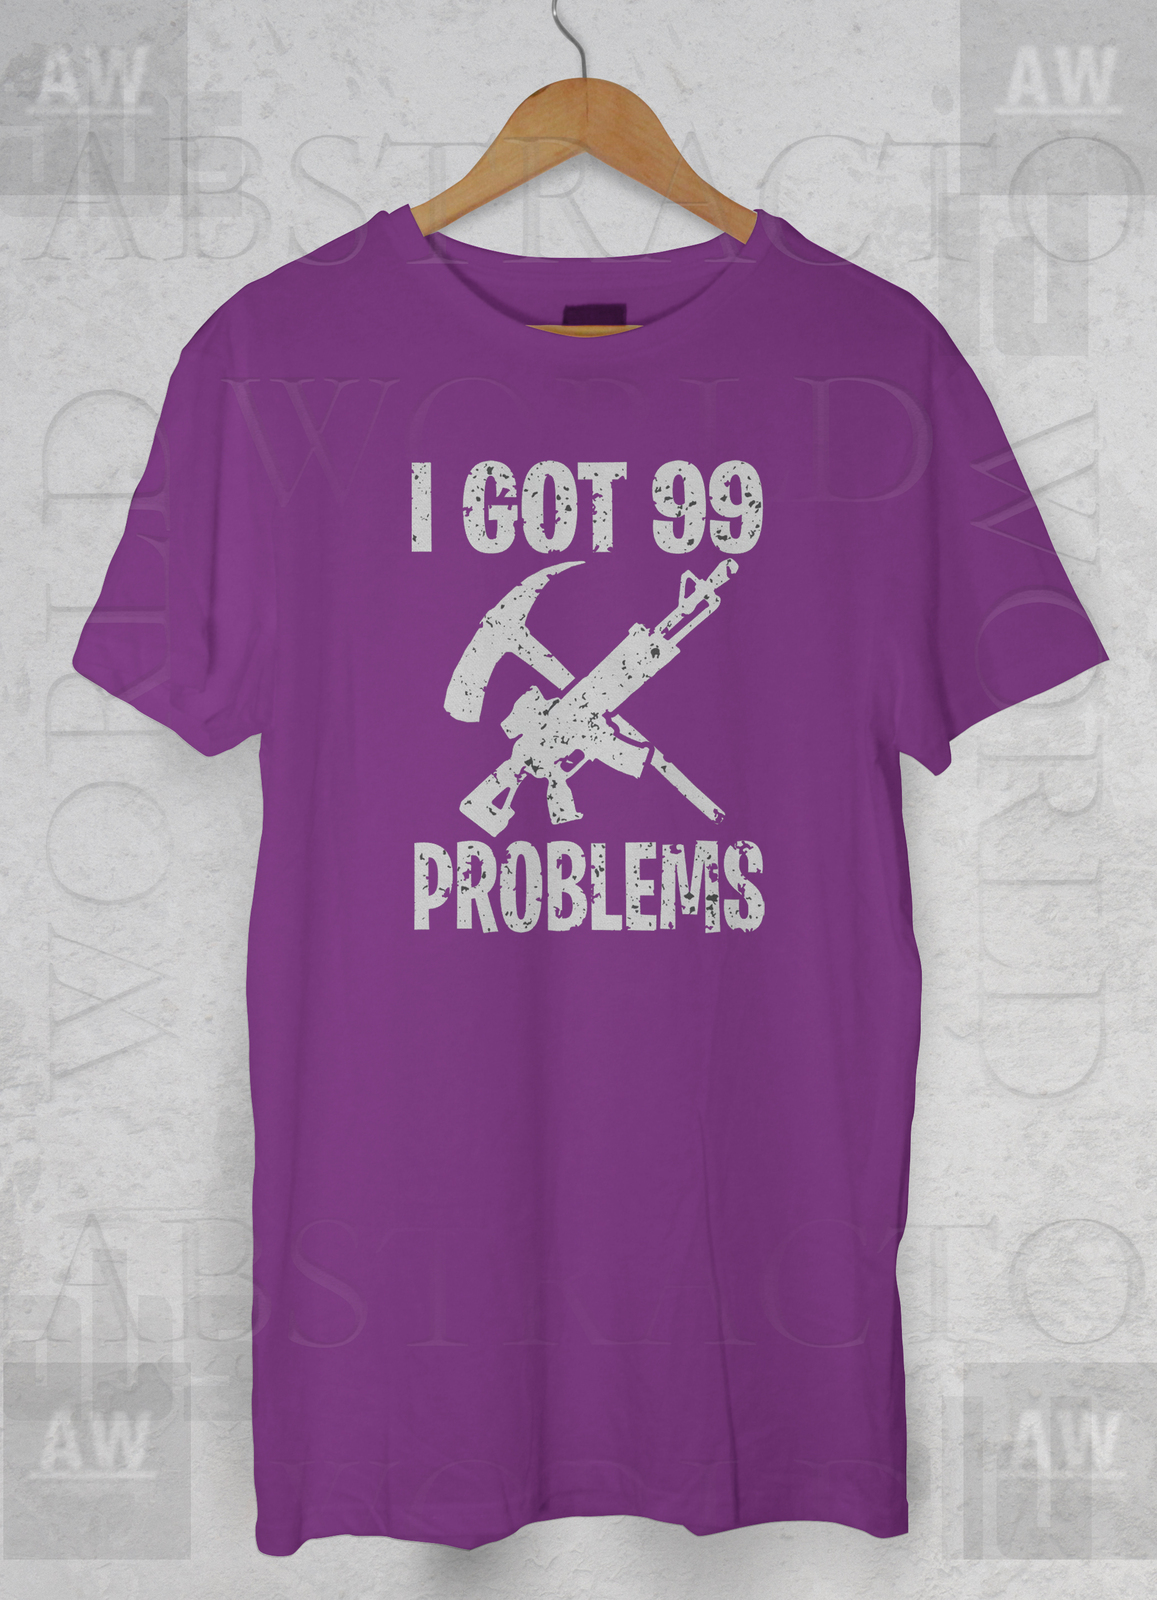 99 Problems Gaming Tee Youtube Twitch Adult and 50 similar items